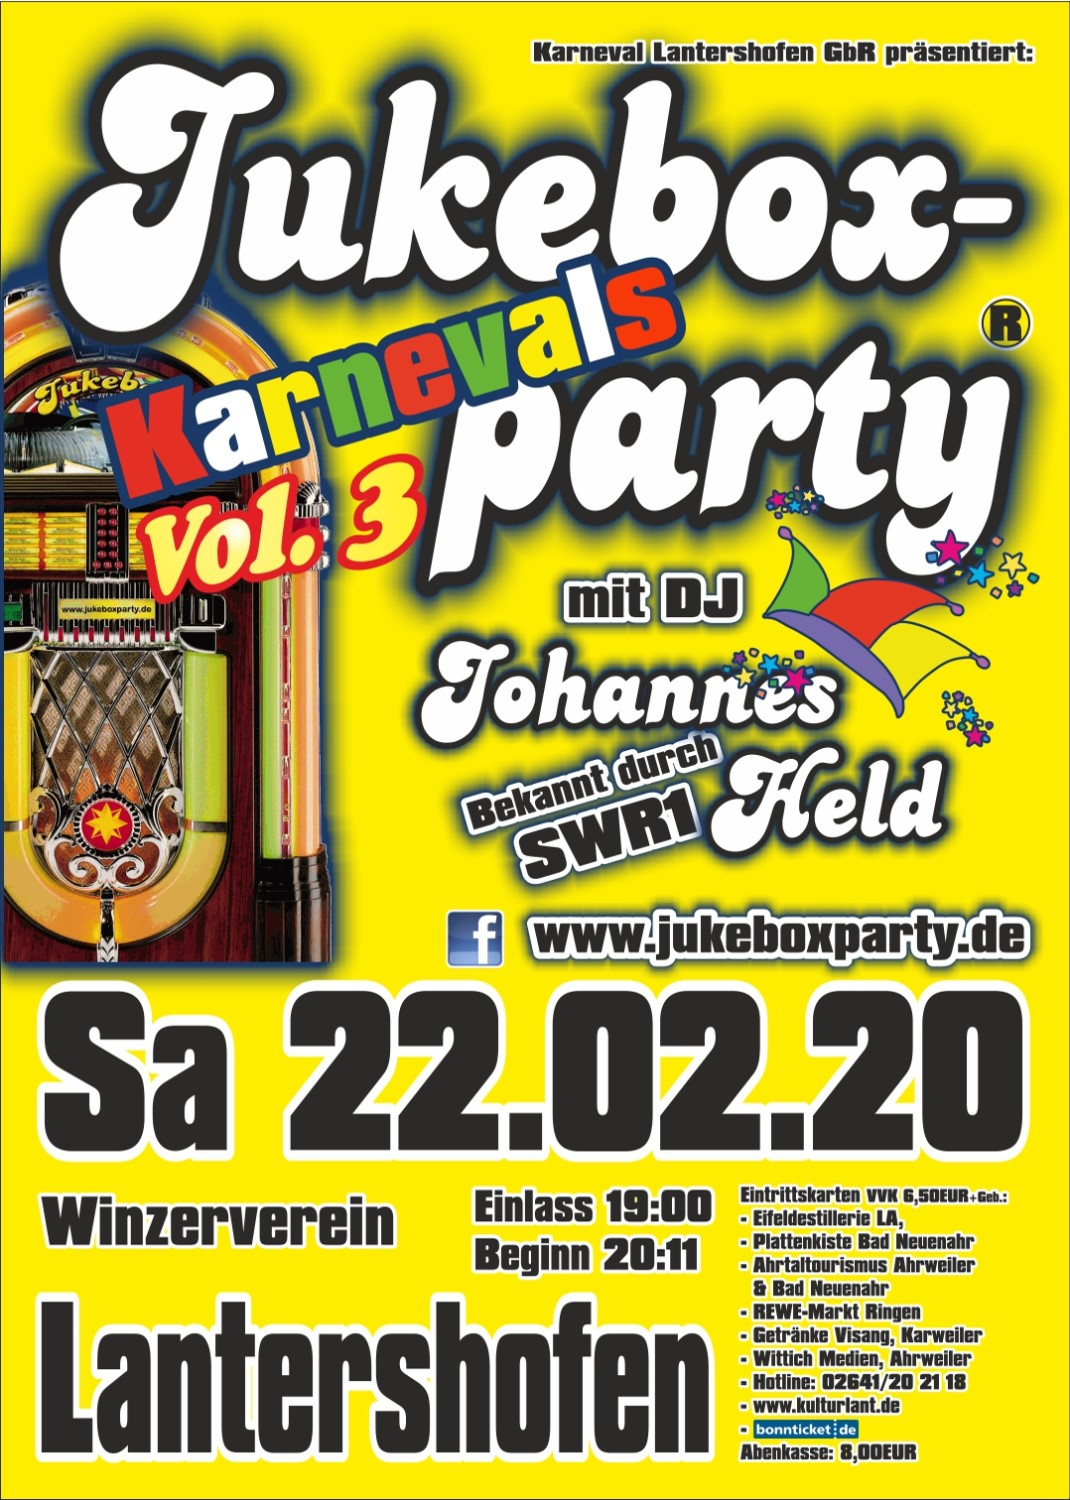 Karnevals-Jukeboxparty Lantershofen 2019 Flyer